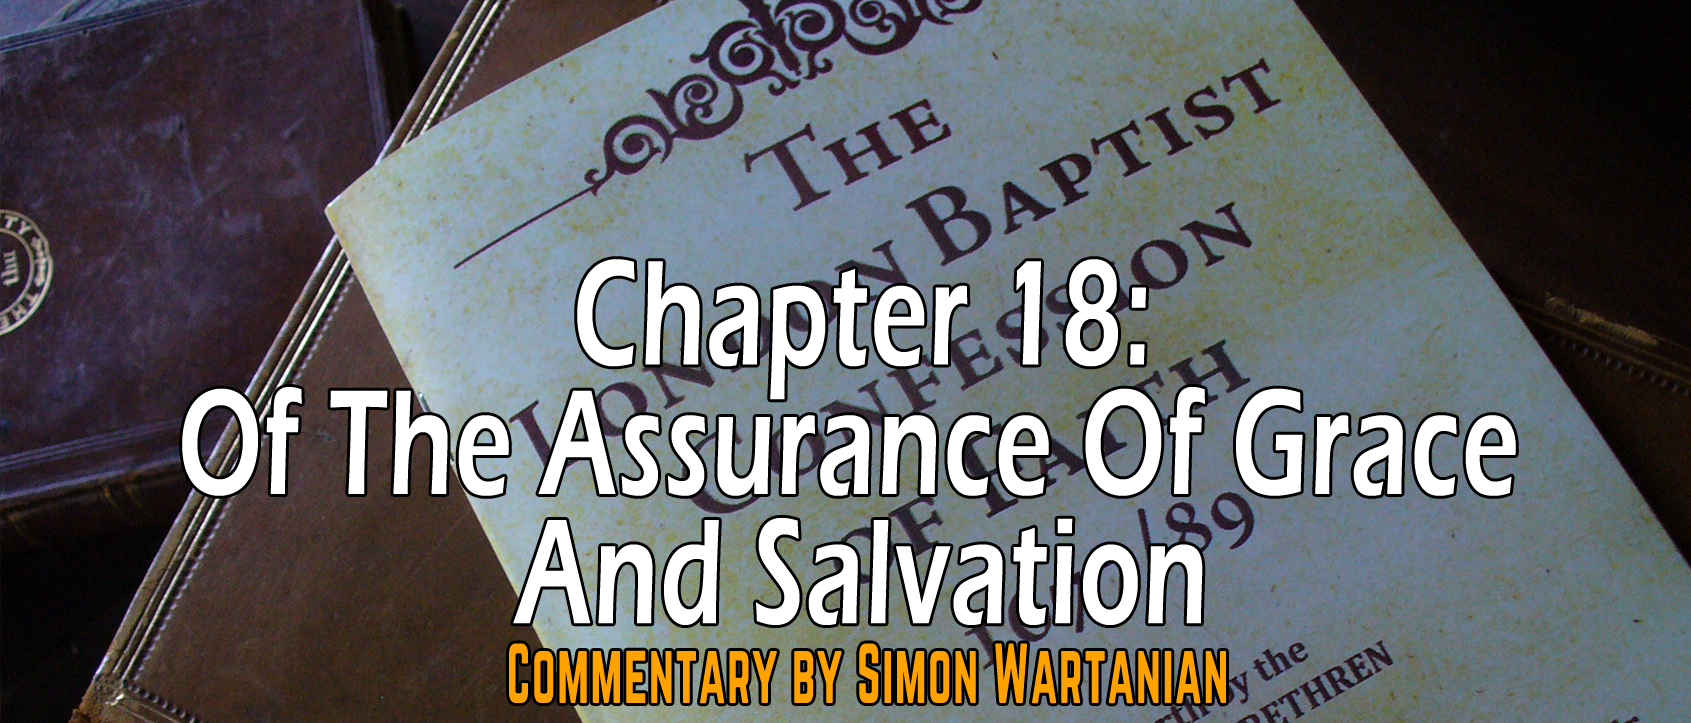 1689 Baptist Confession Chapter 18: Of the Assurance of Grace and Salvation - Commentary